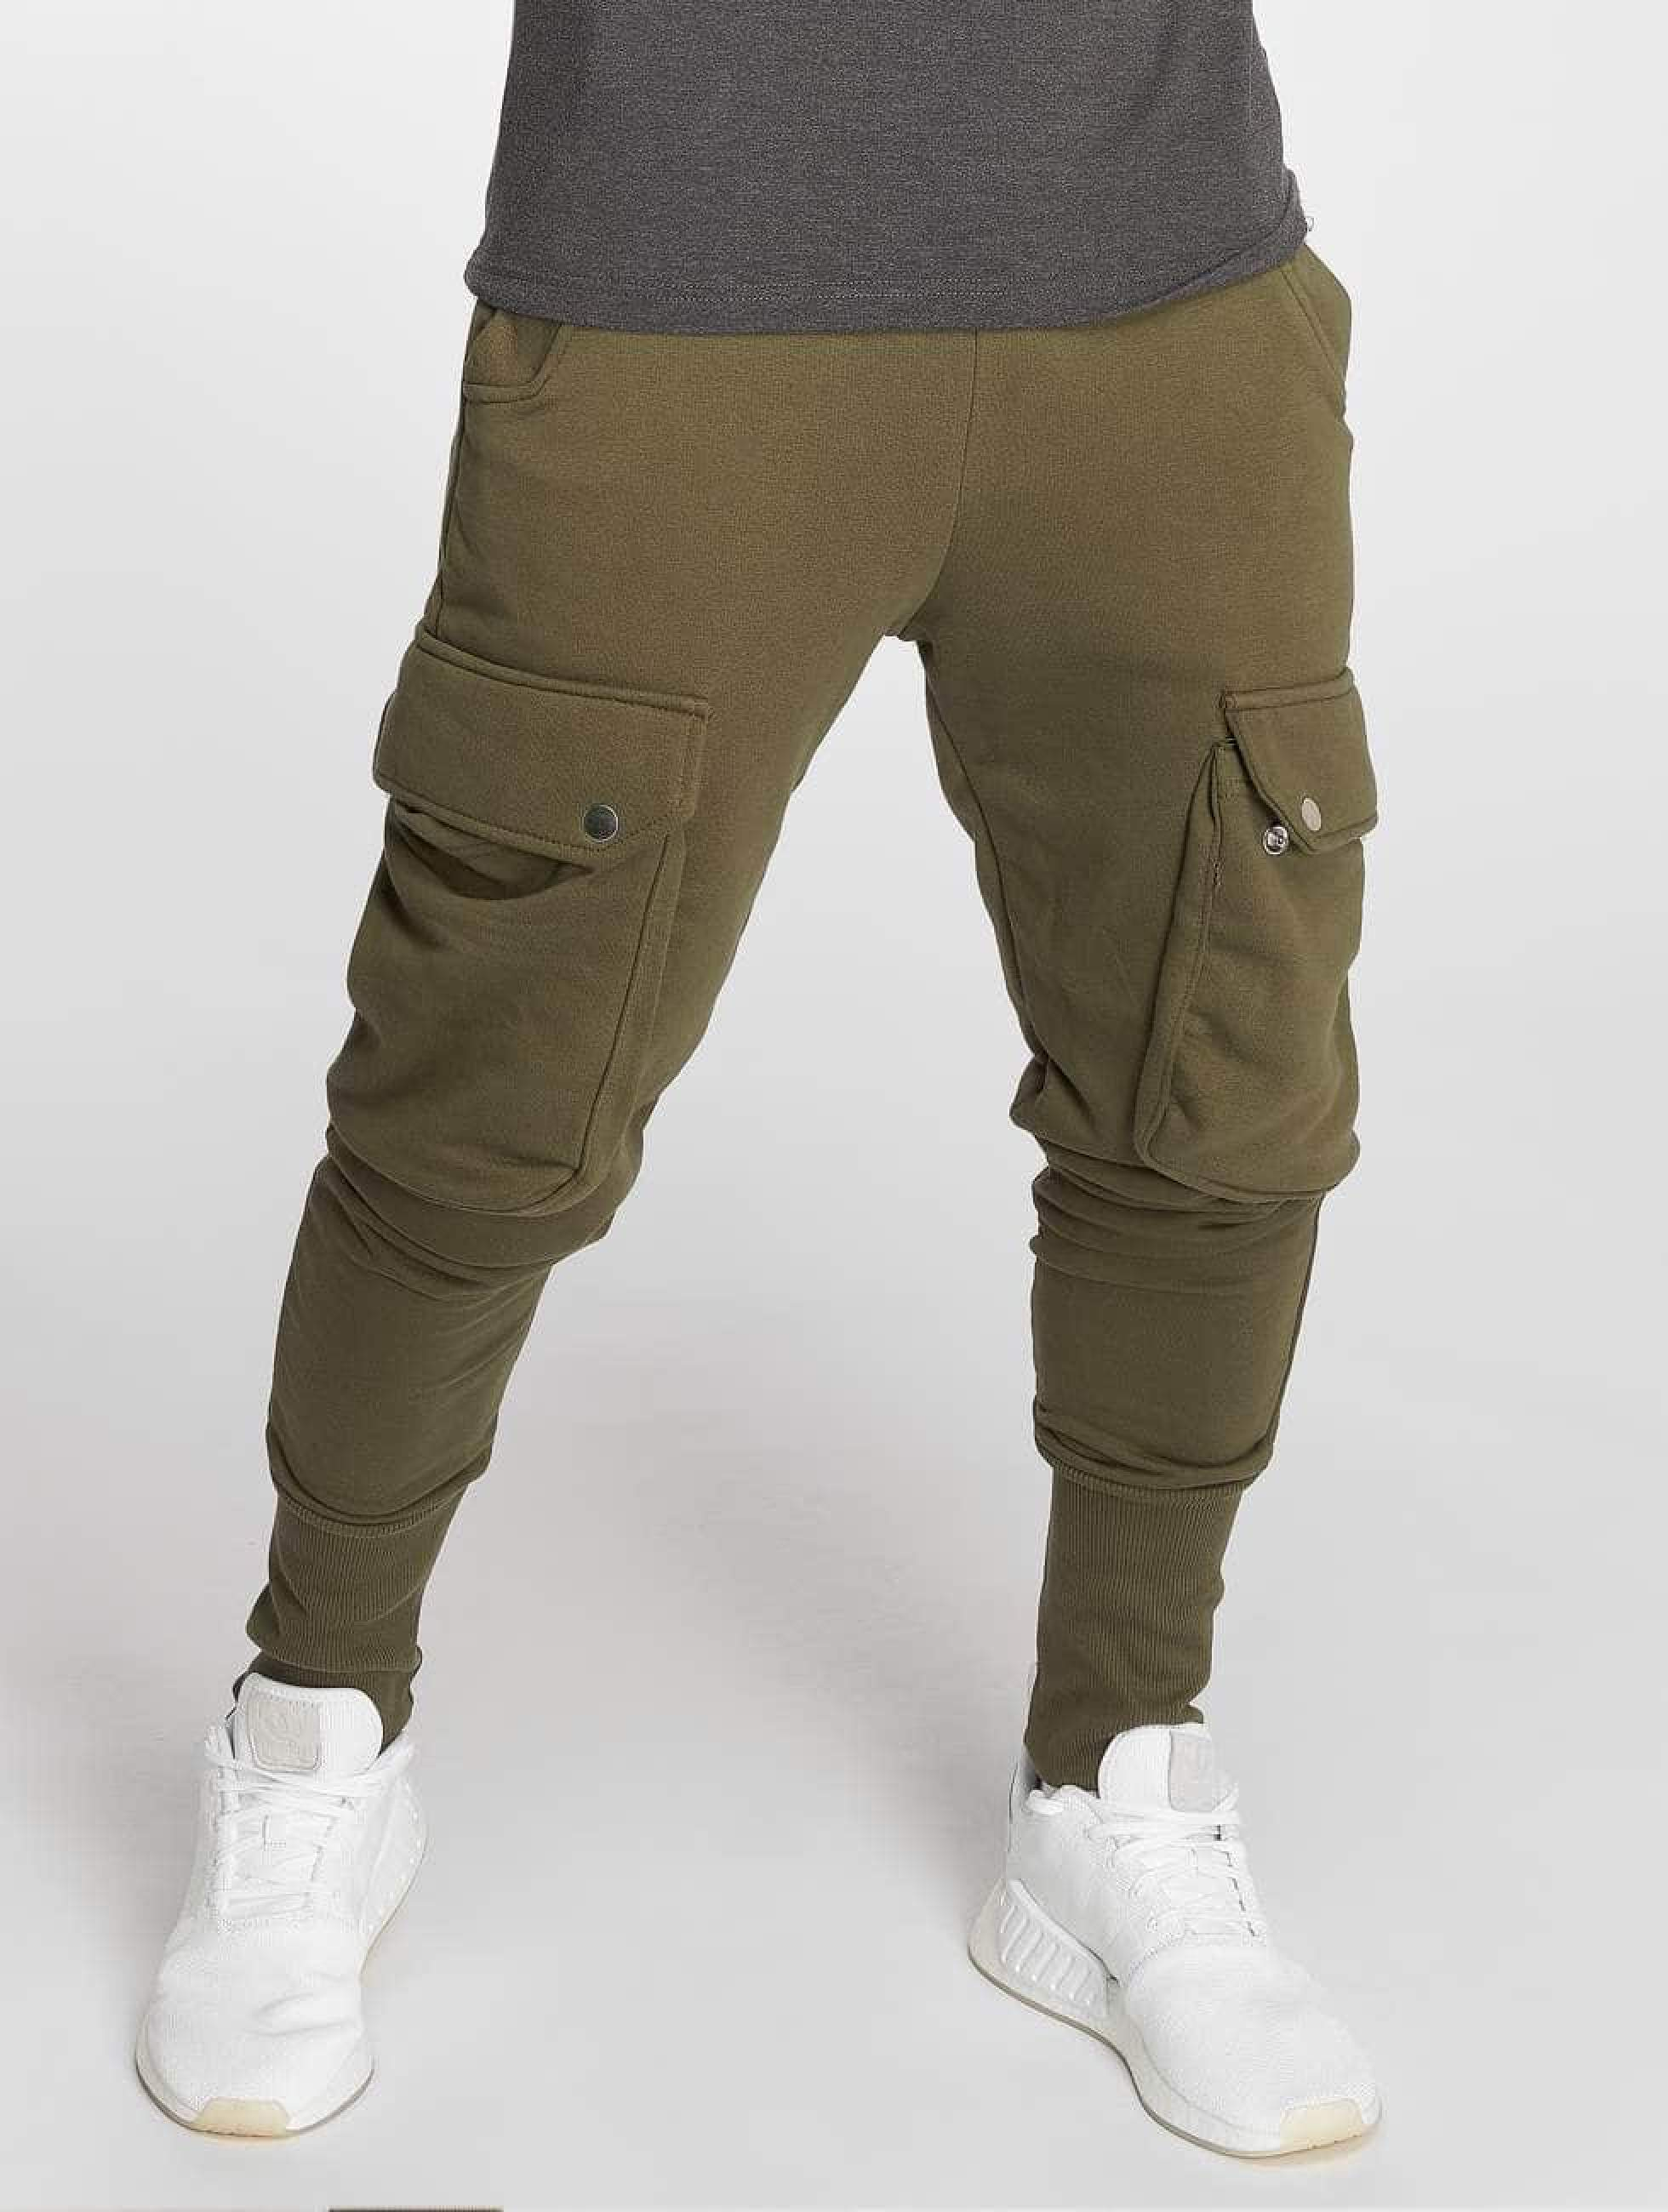 Bangastic / Sweat Pant Sweetstyle in olive 3XL